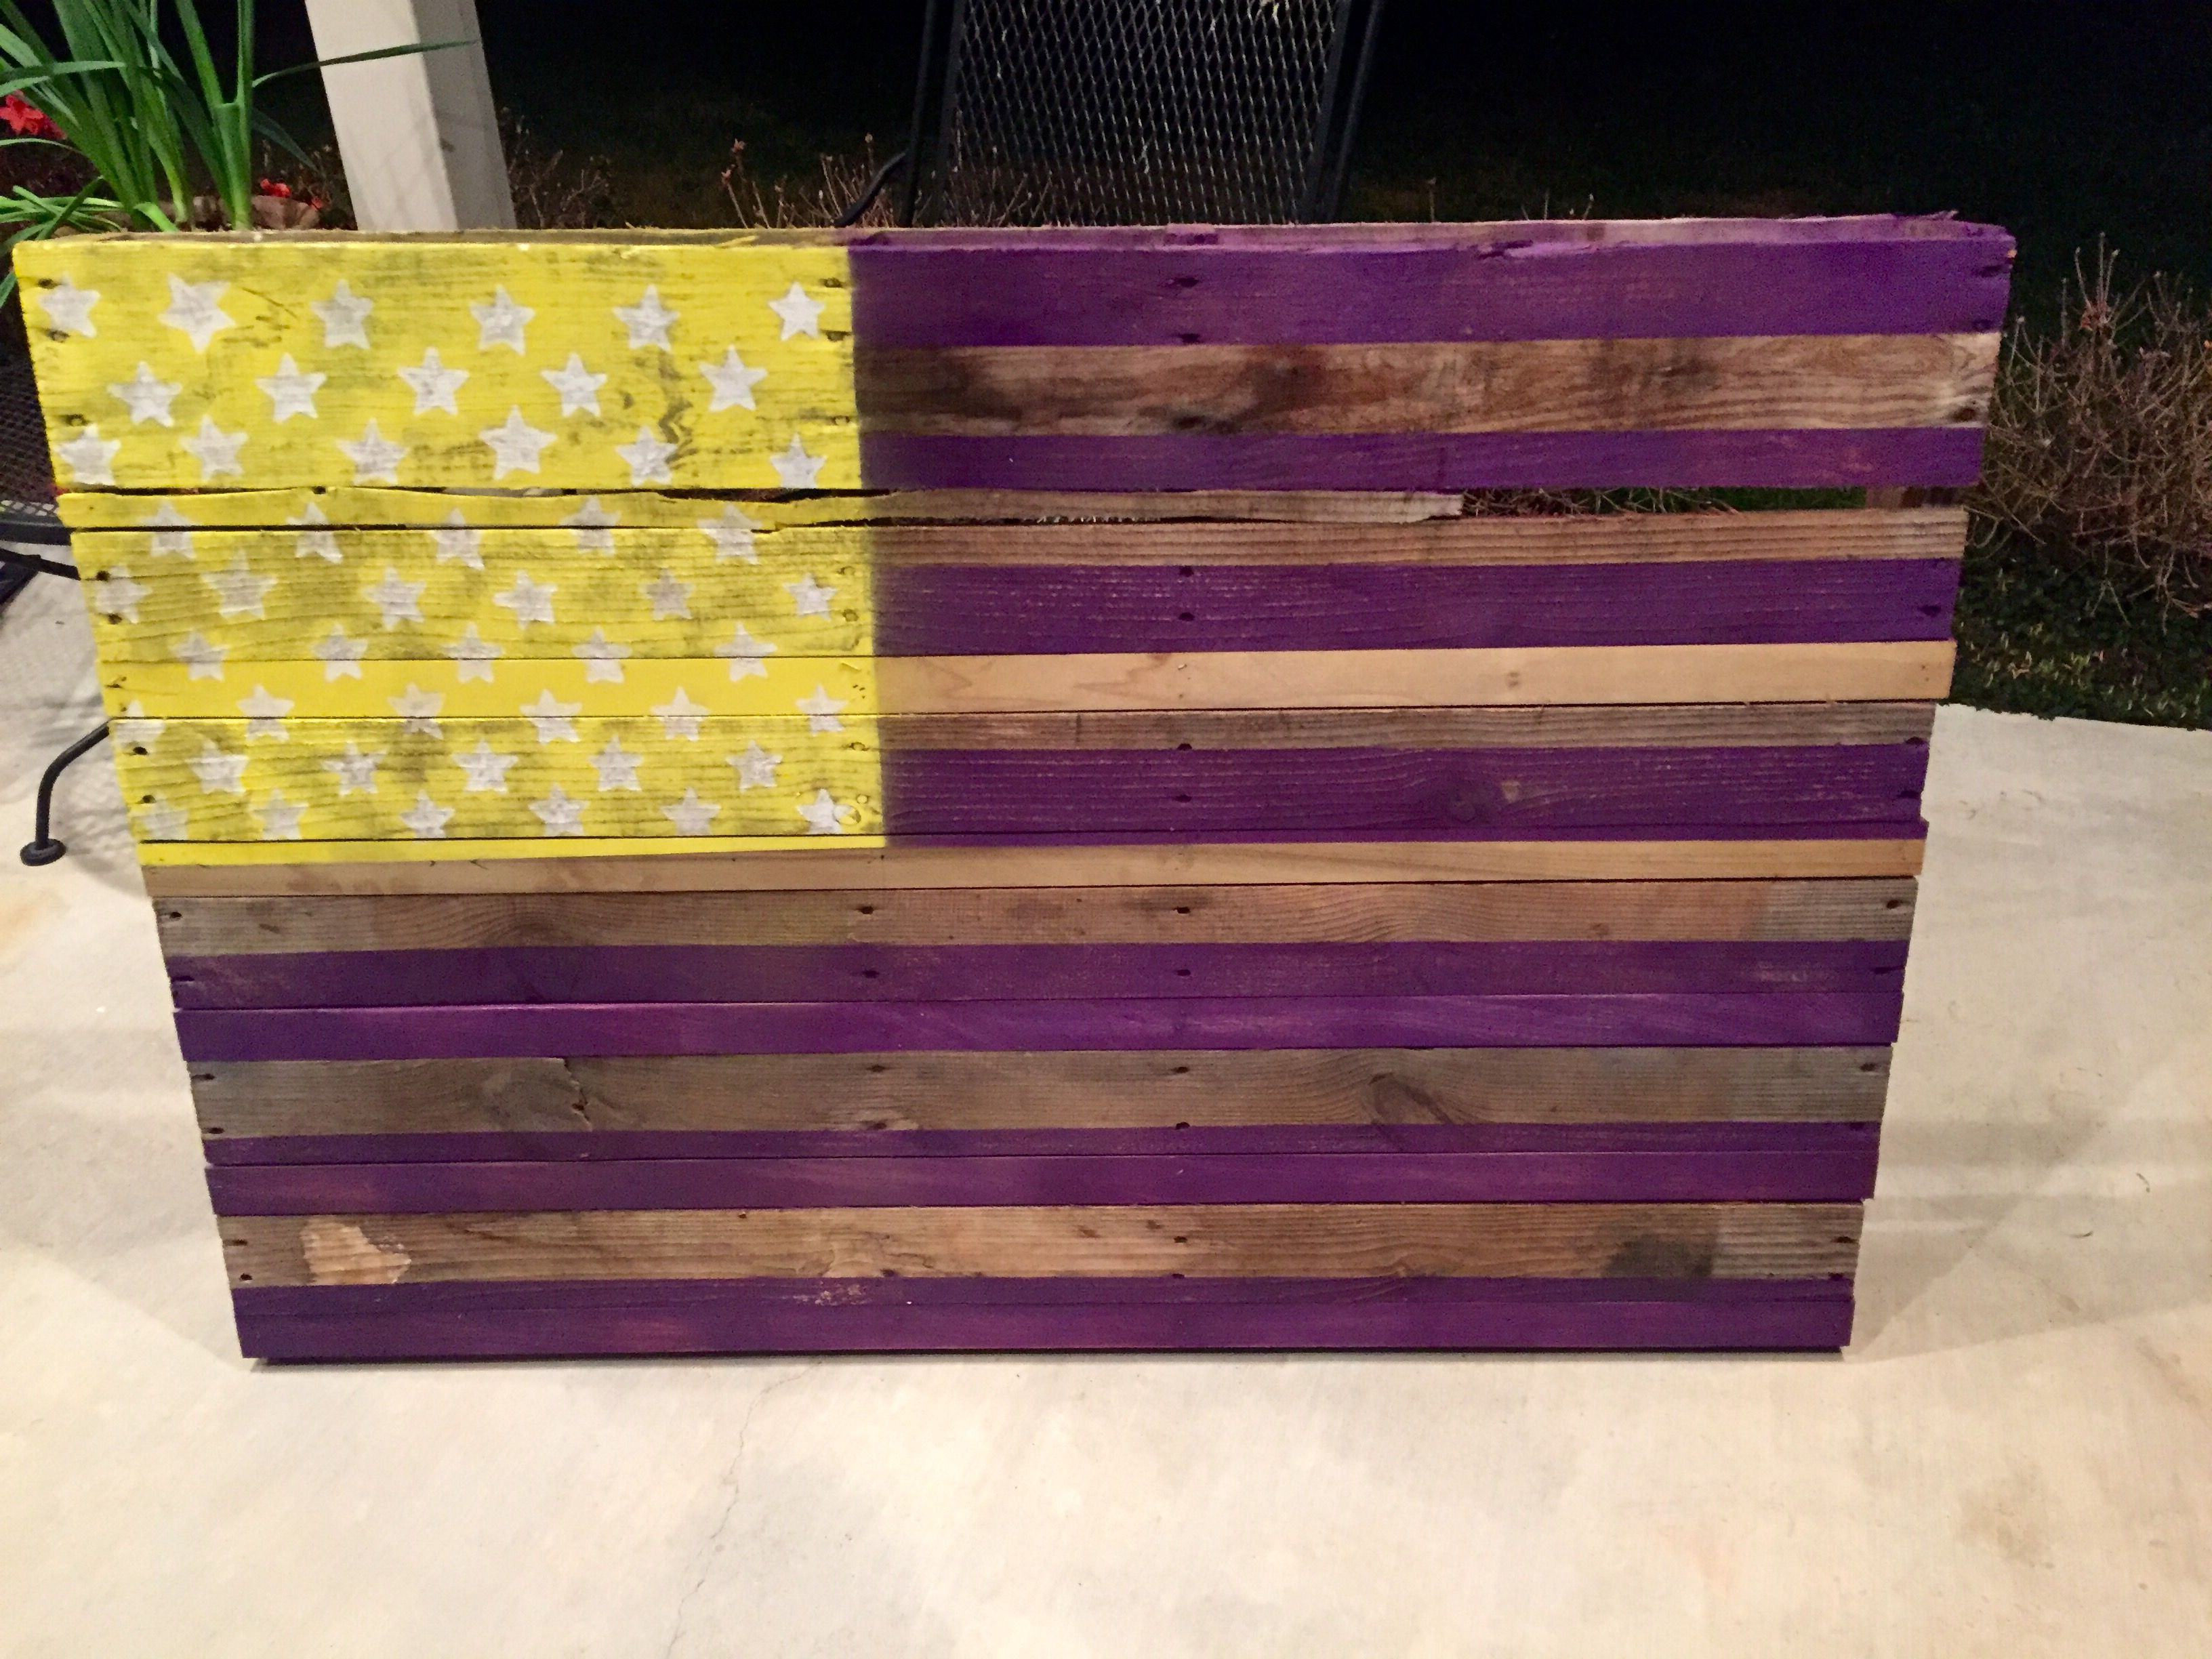 Handmade Custom Pallet Flags by Junkyard Dog Designs